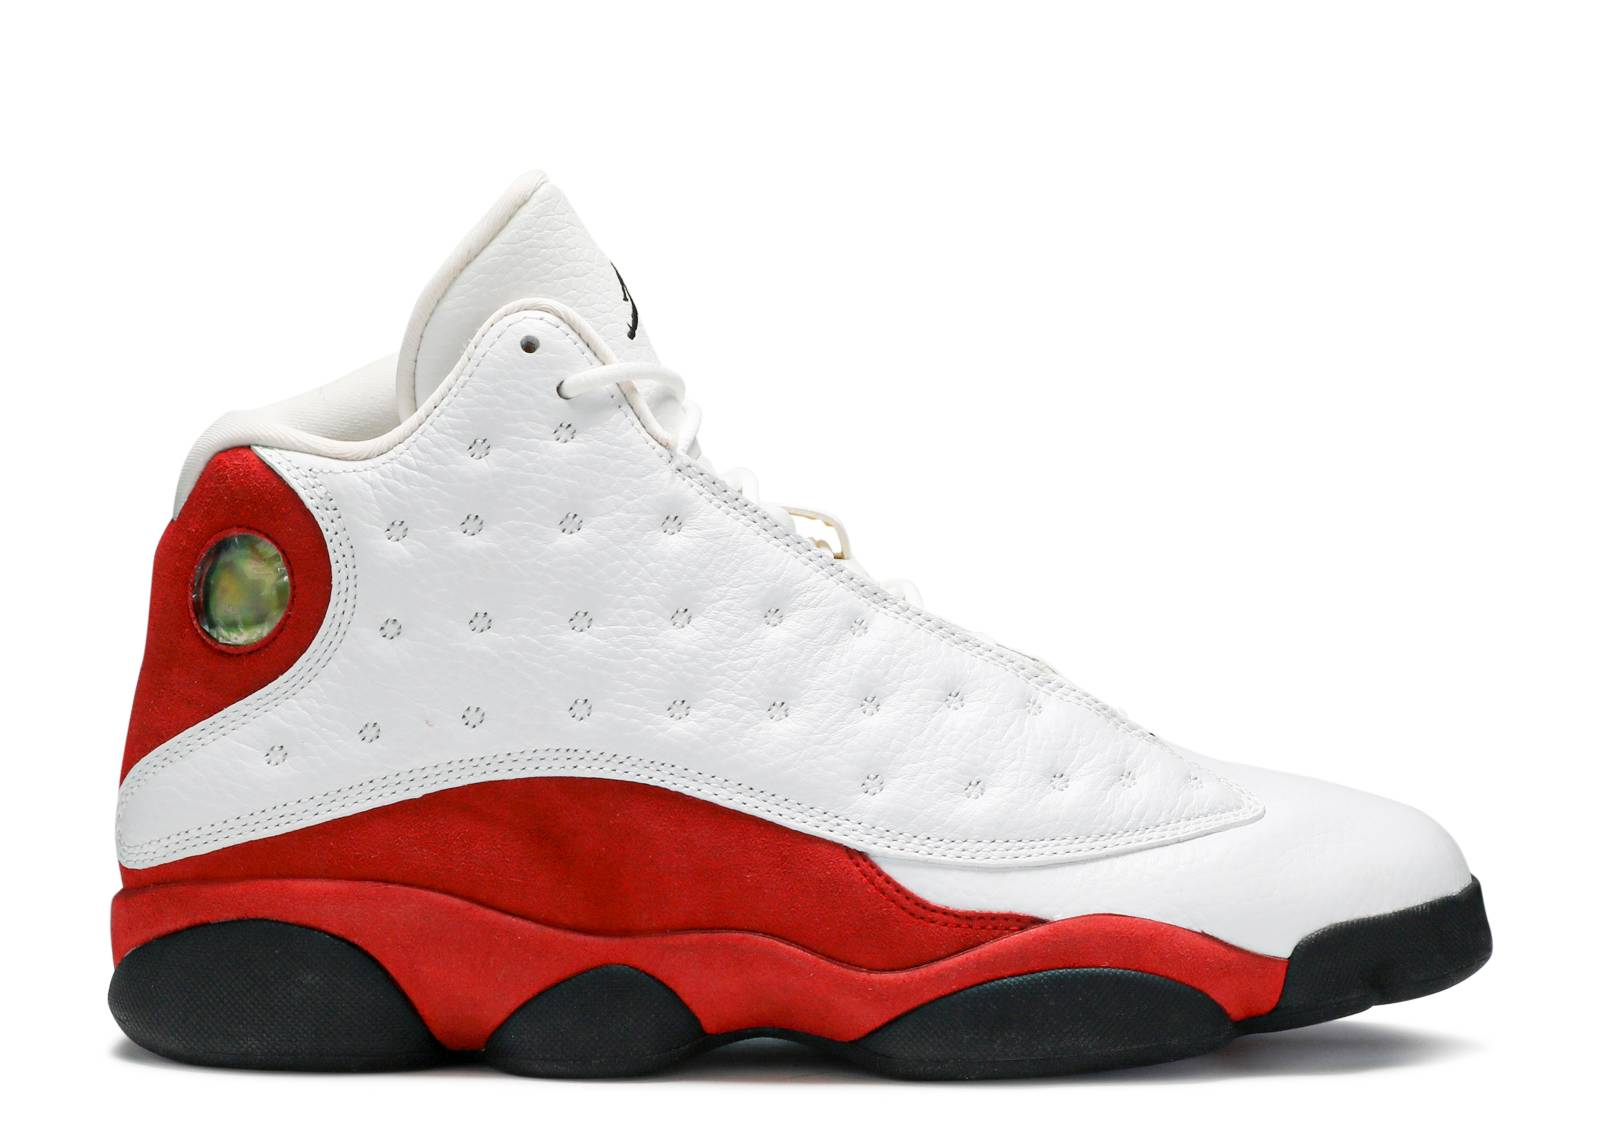 8ef76875e58 Air Jordan 13 Retro